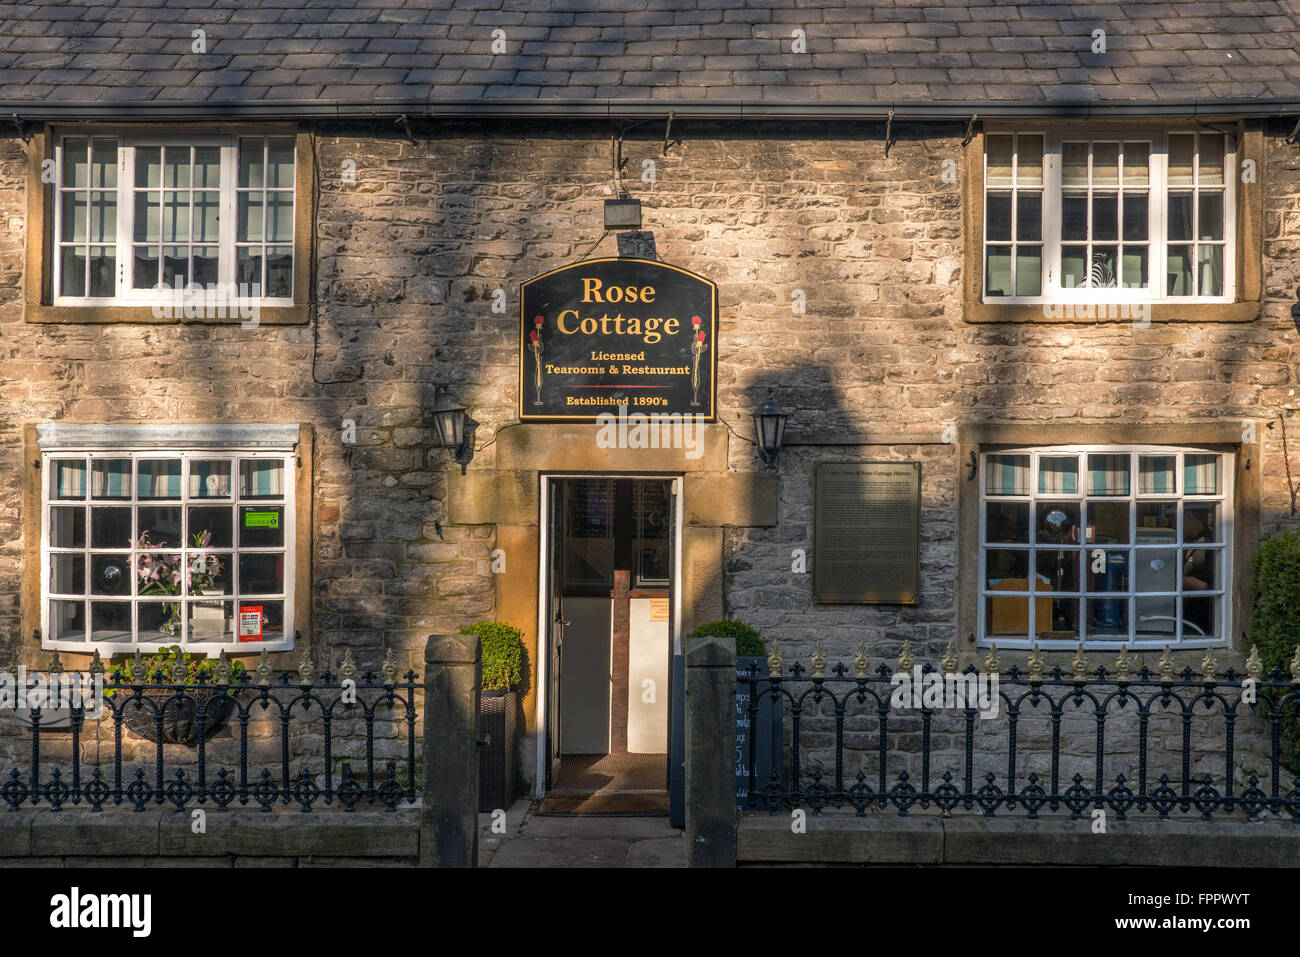 Rose Cottage Tearooms and Restaurant, Castleton, Derbyshire Stock Photo